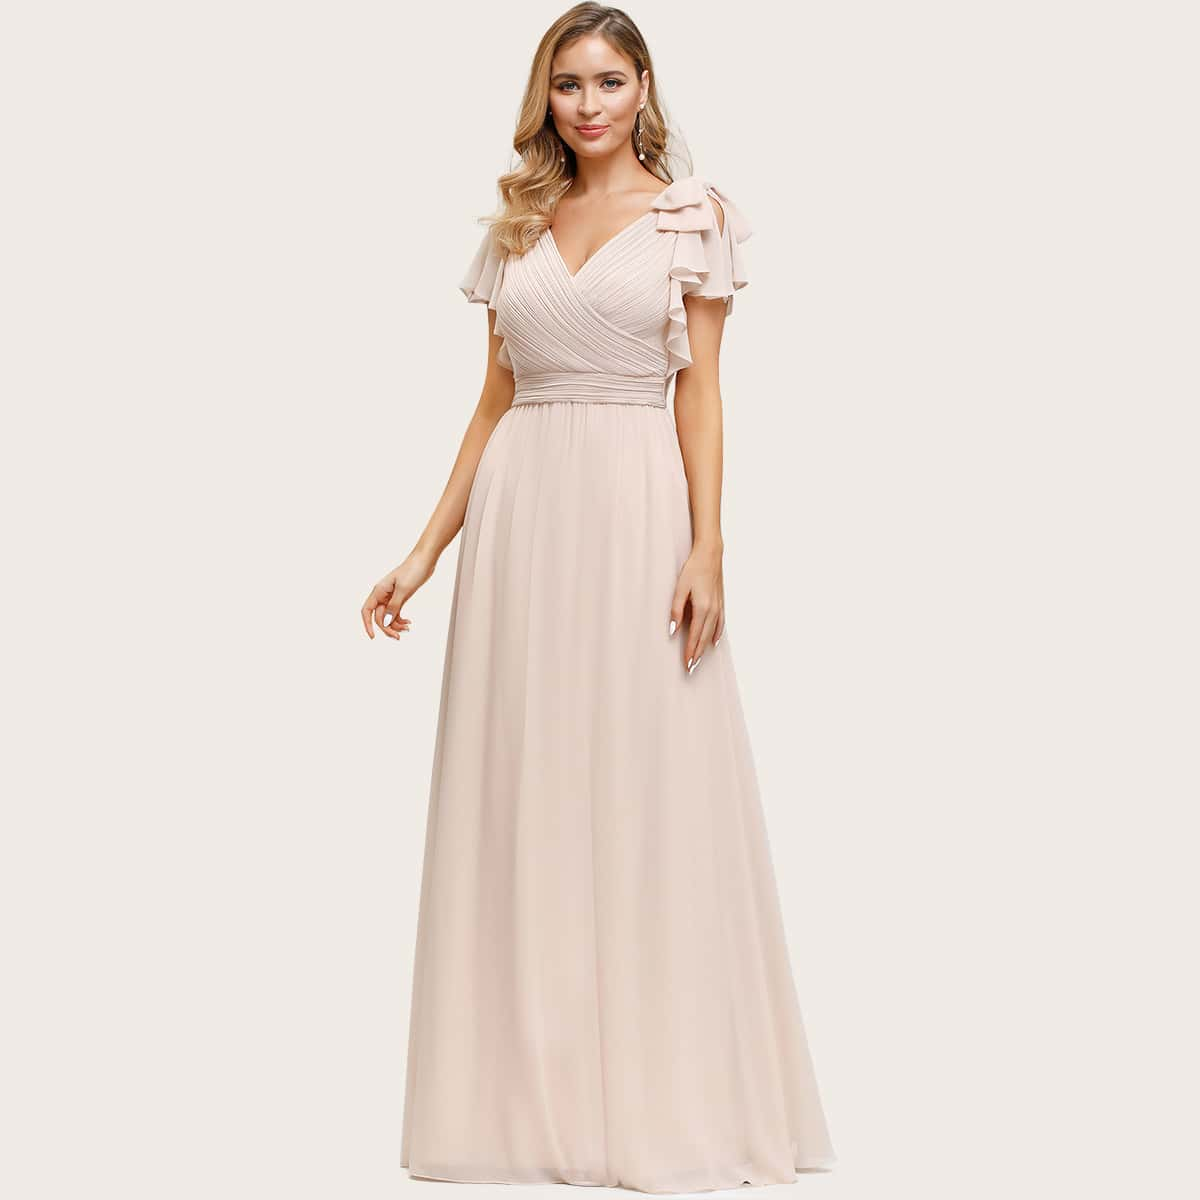 Butterfly Sleeve Ruched Bodice Chiffon Prom Dress